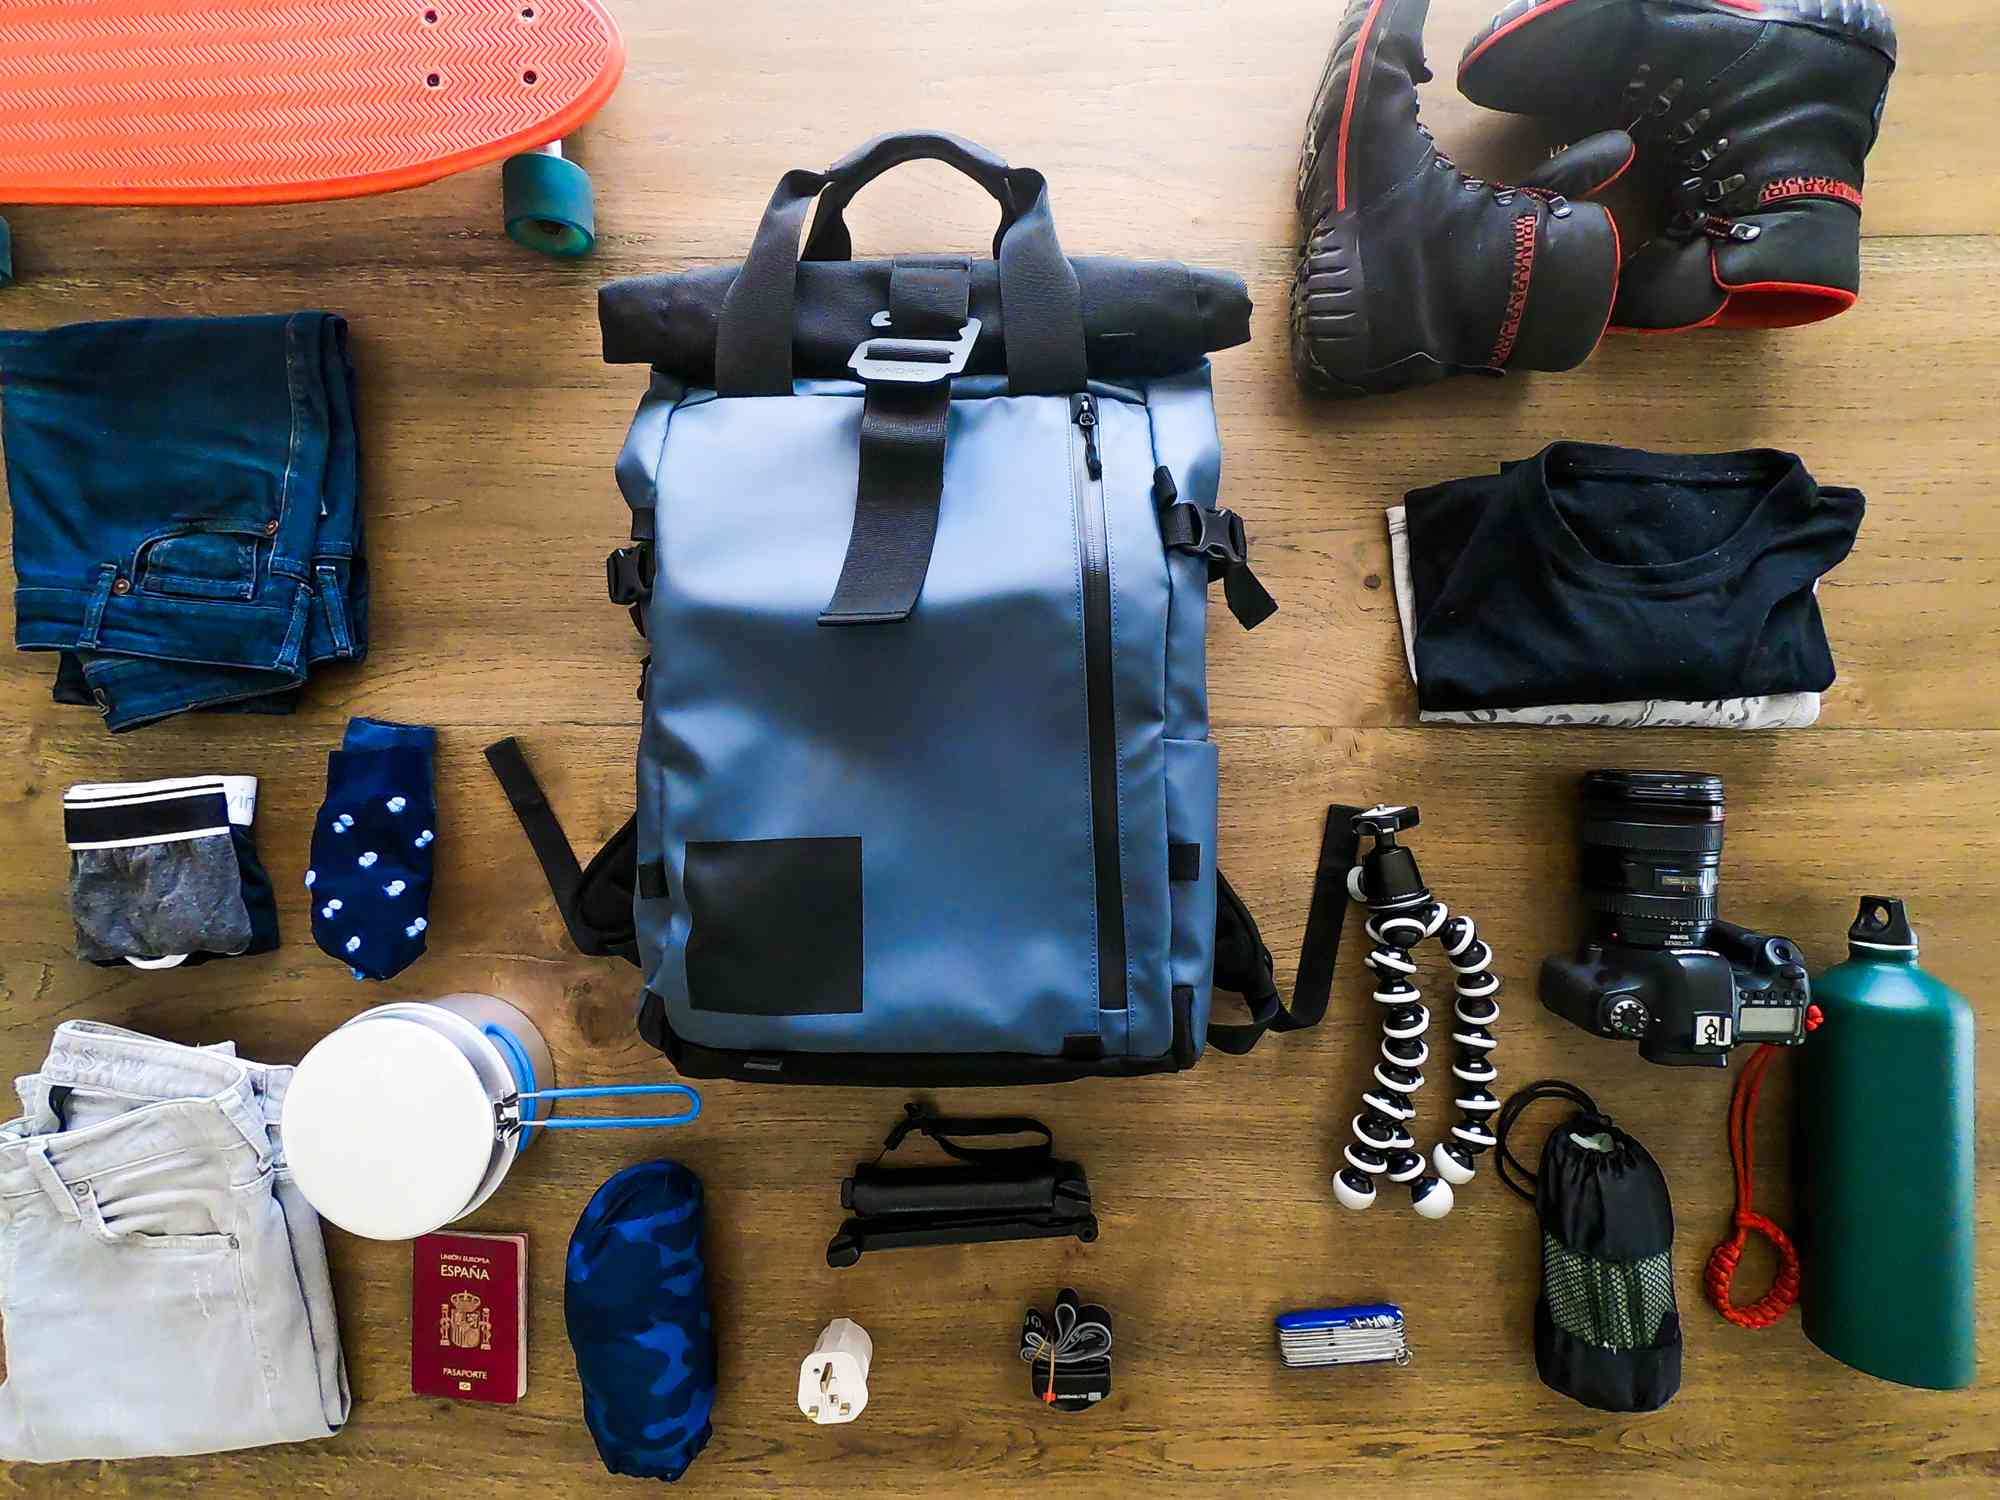 Prepared with hiking gear